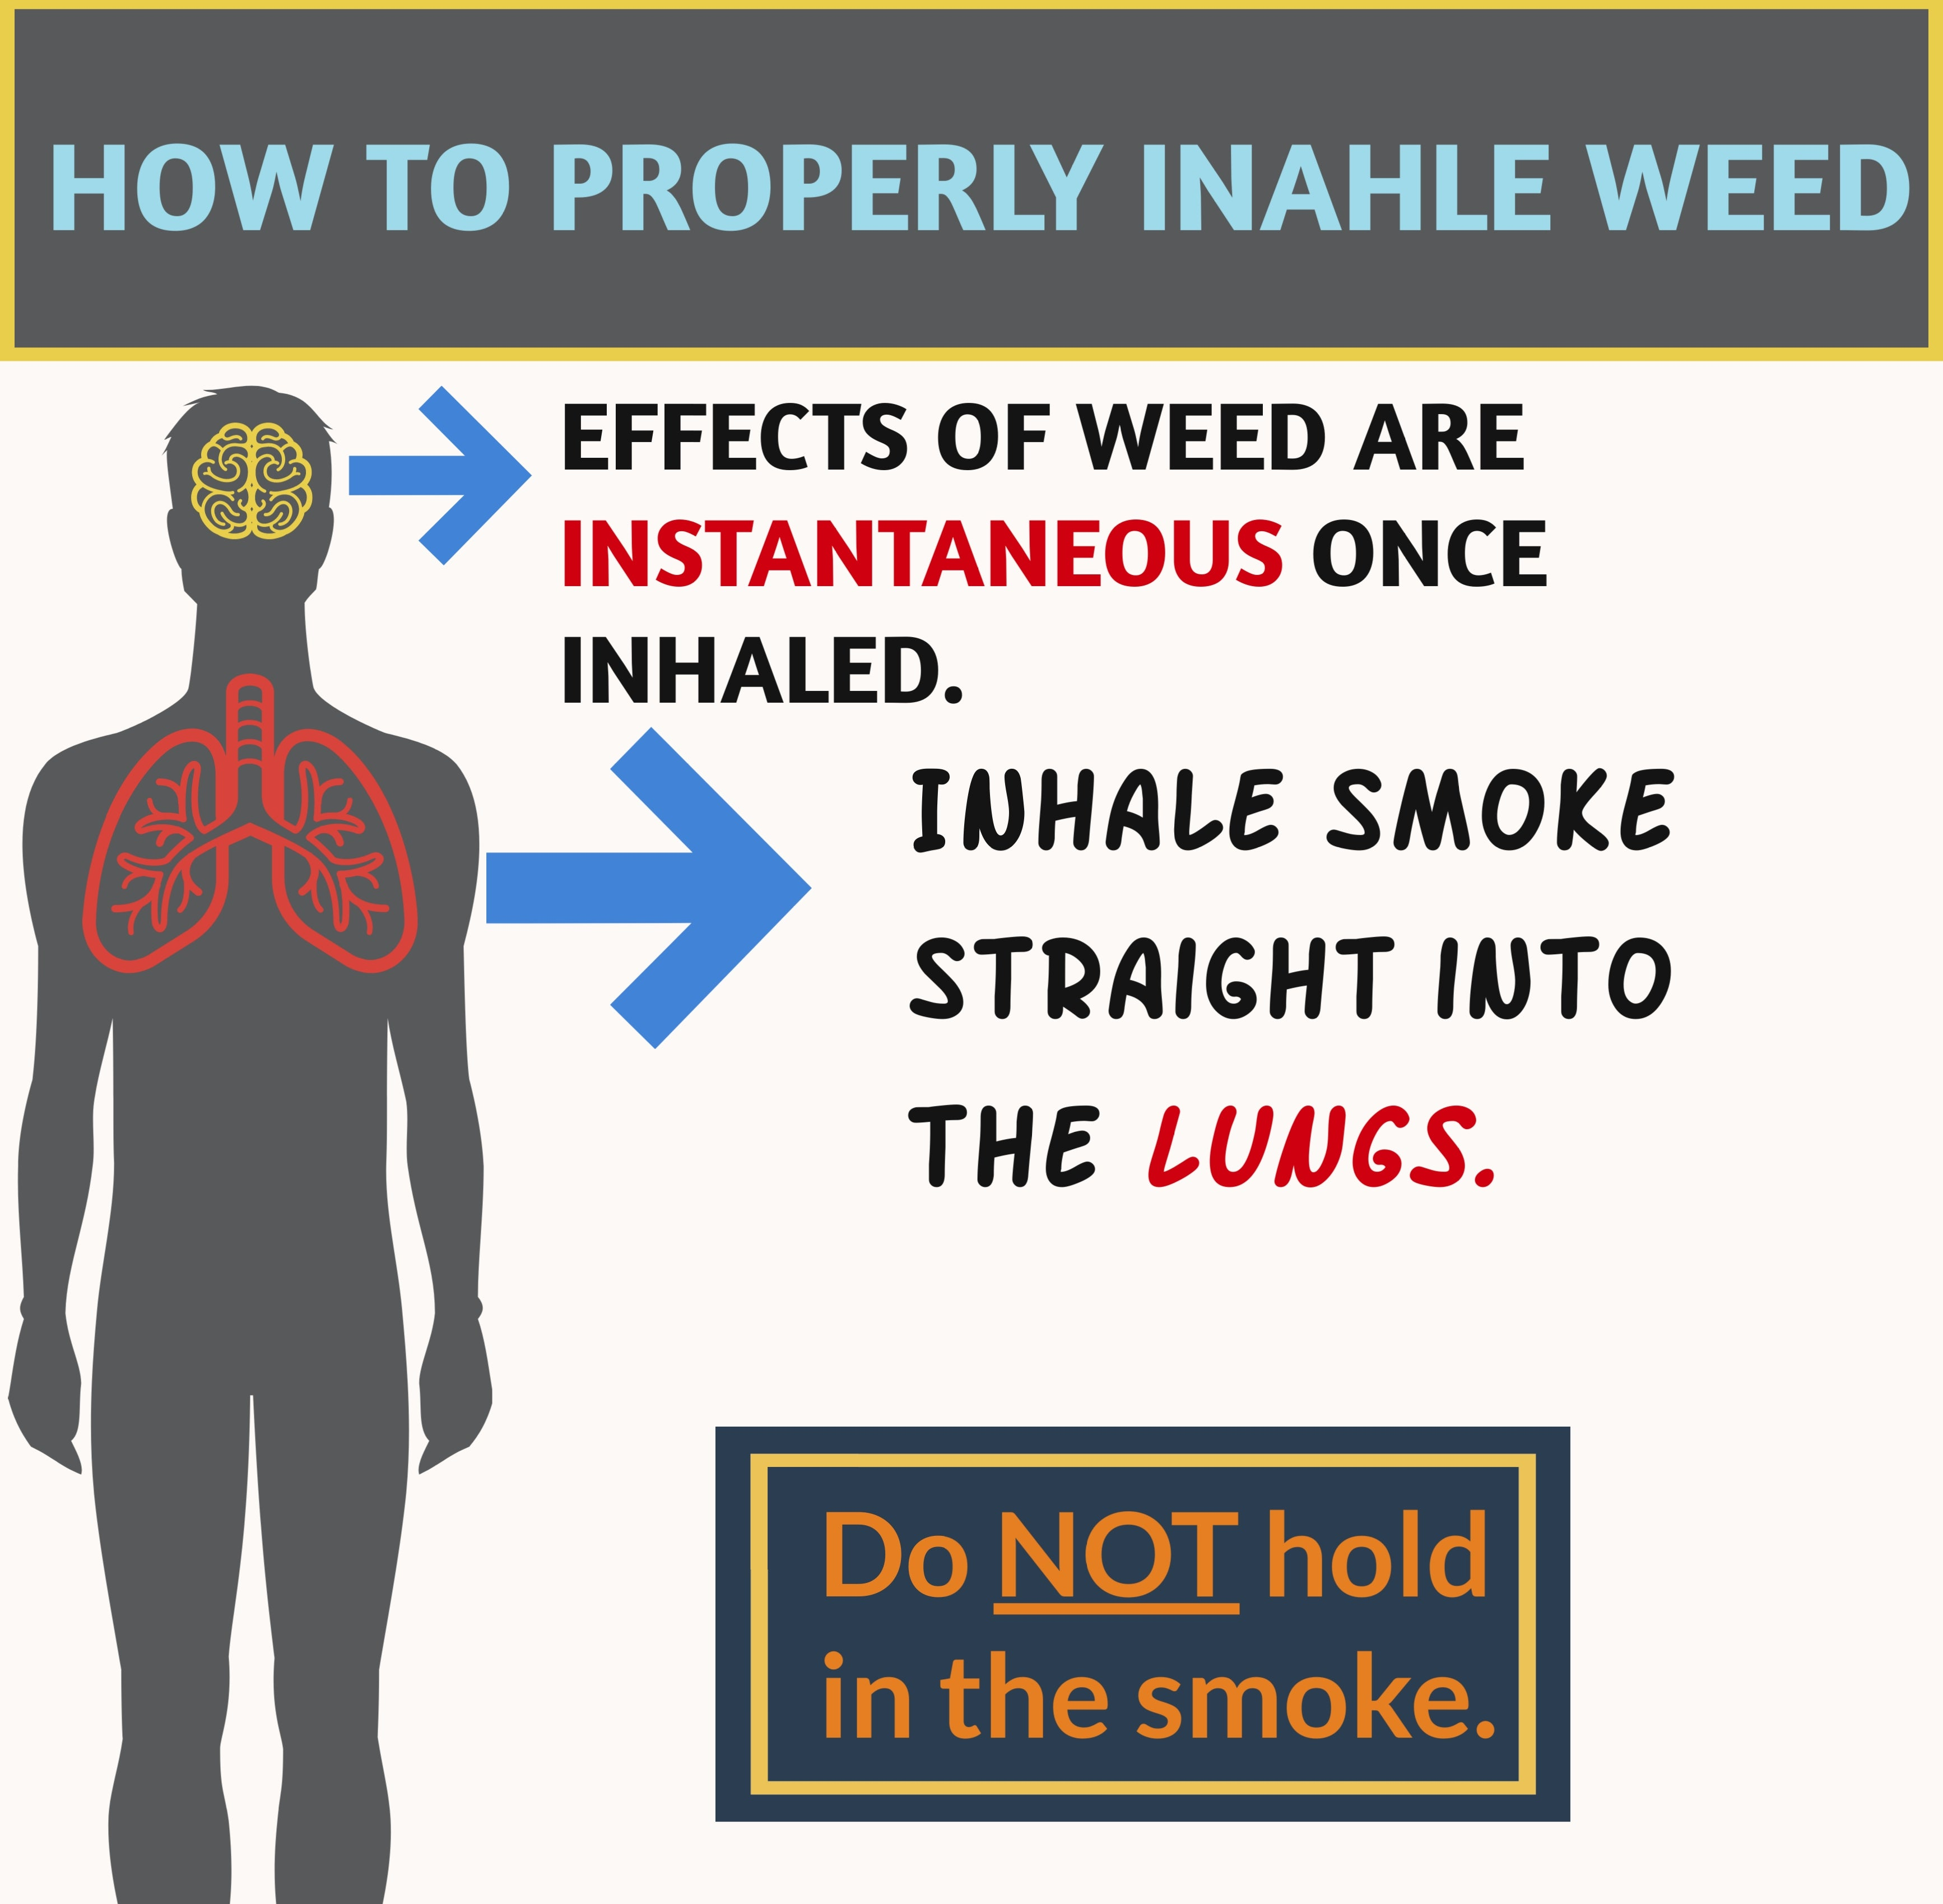 how to properly inhale weed